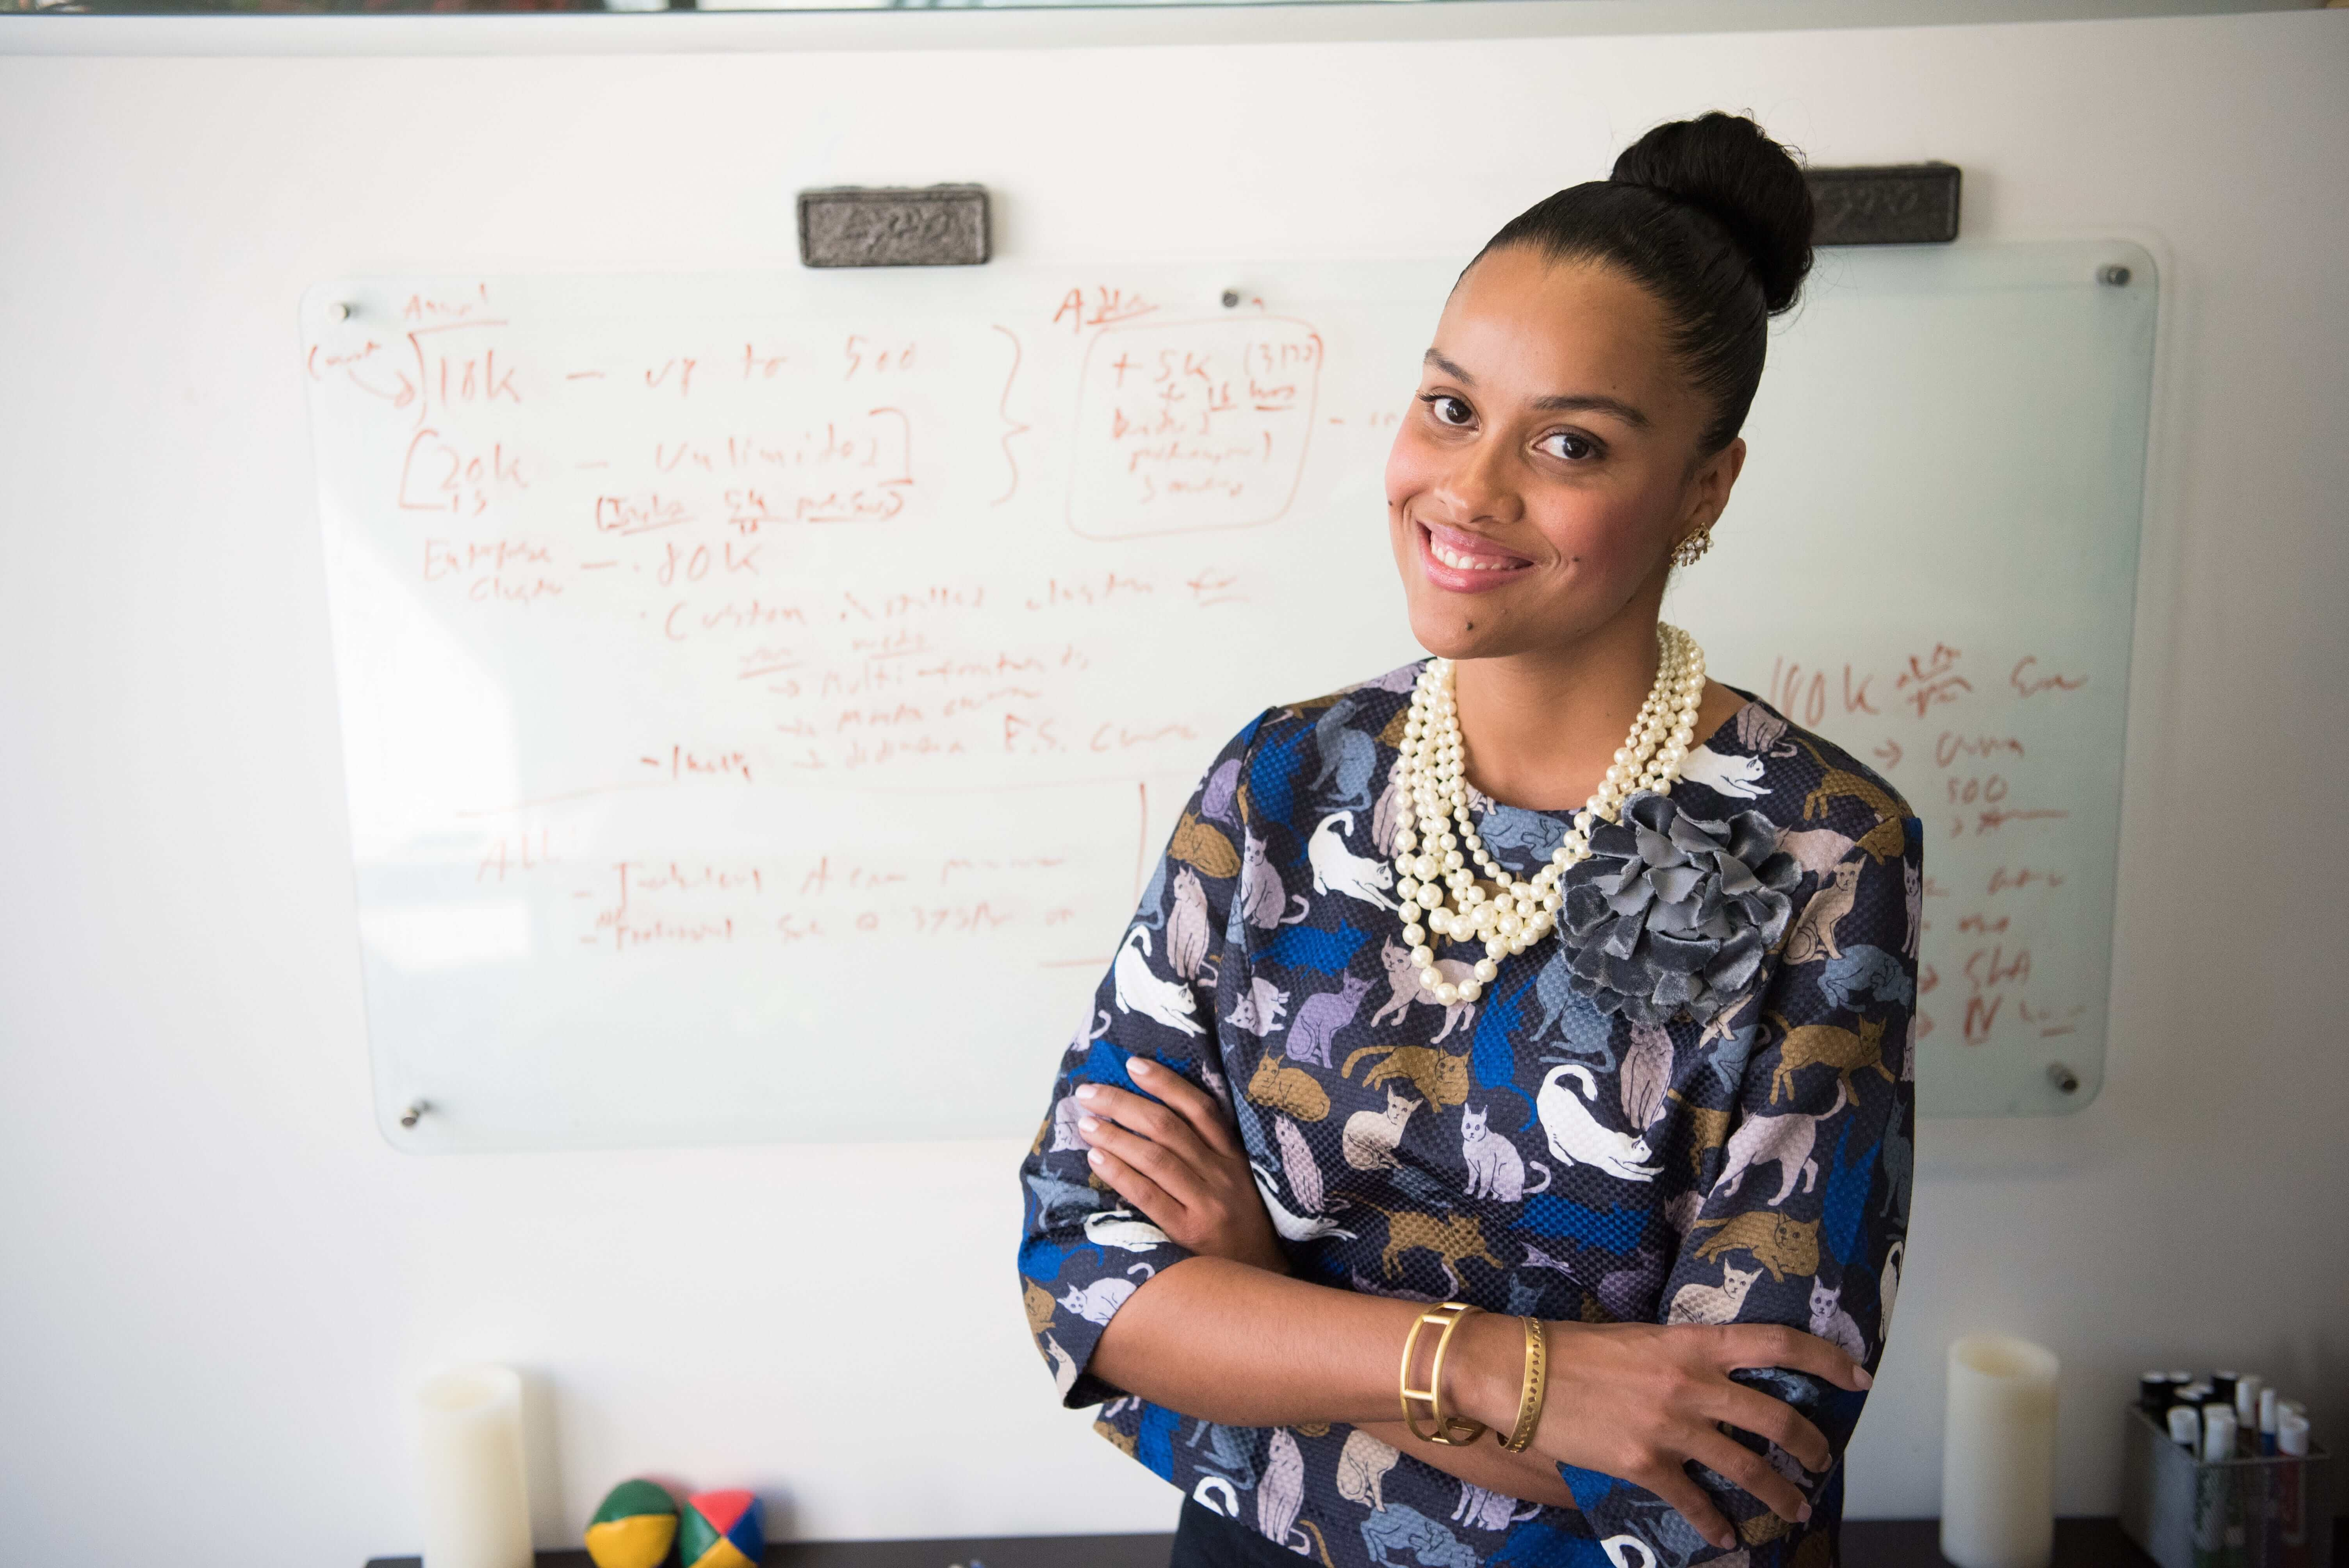 A black woman small business owner entrepreneur who registered her startup filing